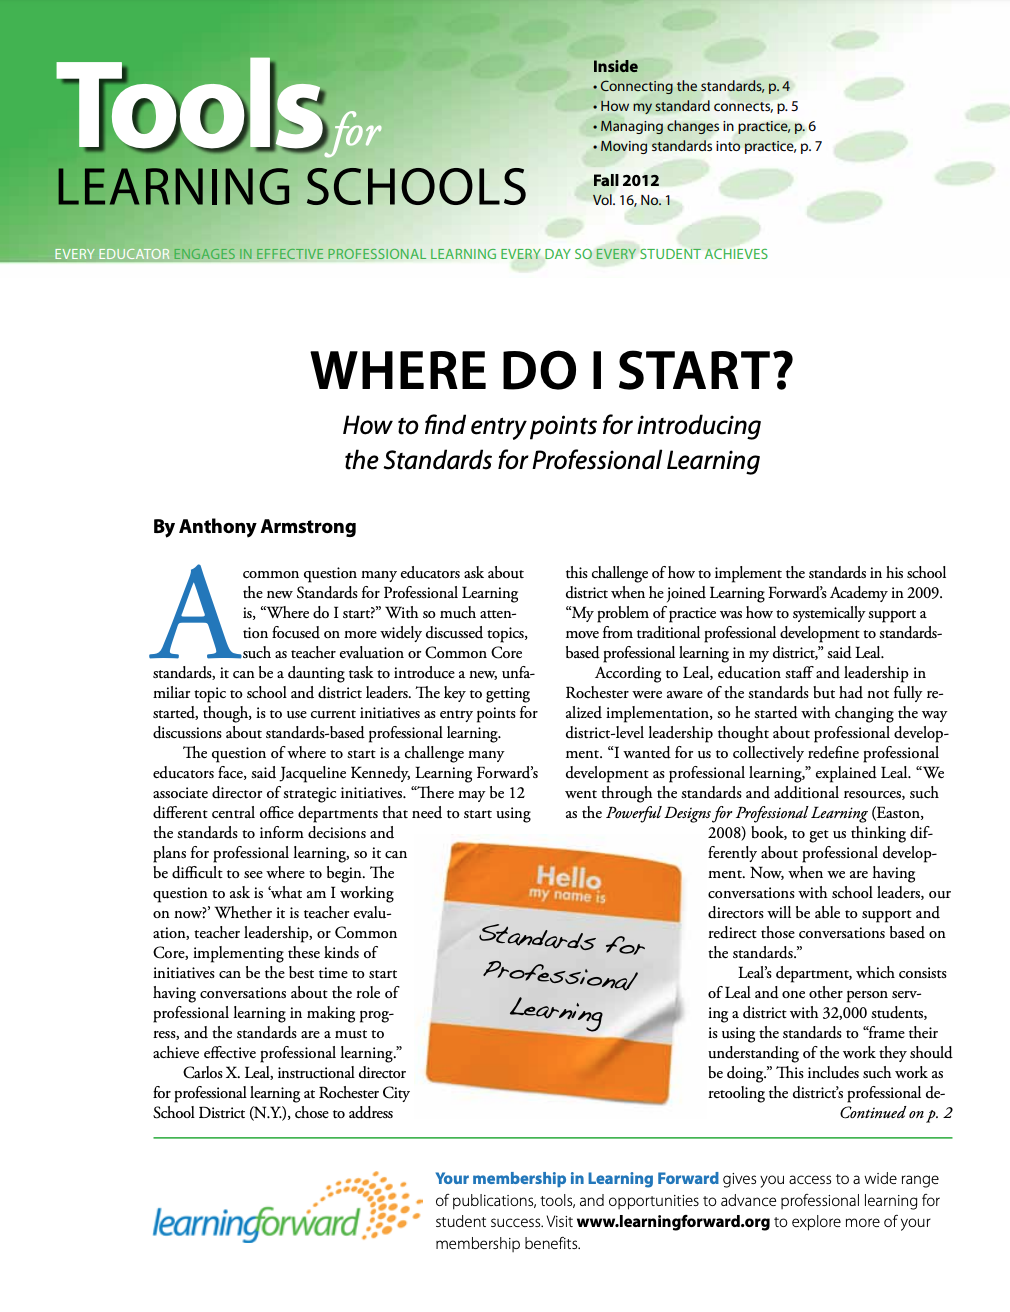 tools-for-learning-schools-fall-2012-vol-16-no-1